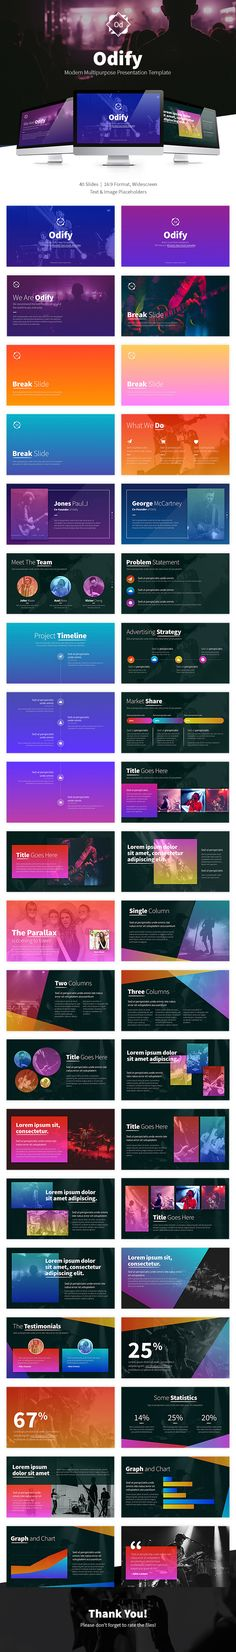 Odify Presentation Template - #PowerPoint Templates #Presentation #Templates Download here: https://graphicriver.net/item/odify-presentation-template/20109089?ref=alena994